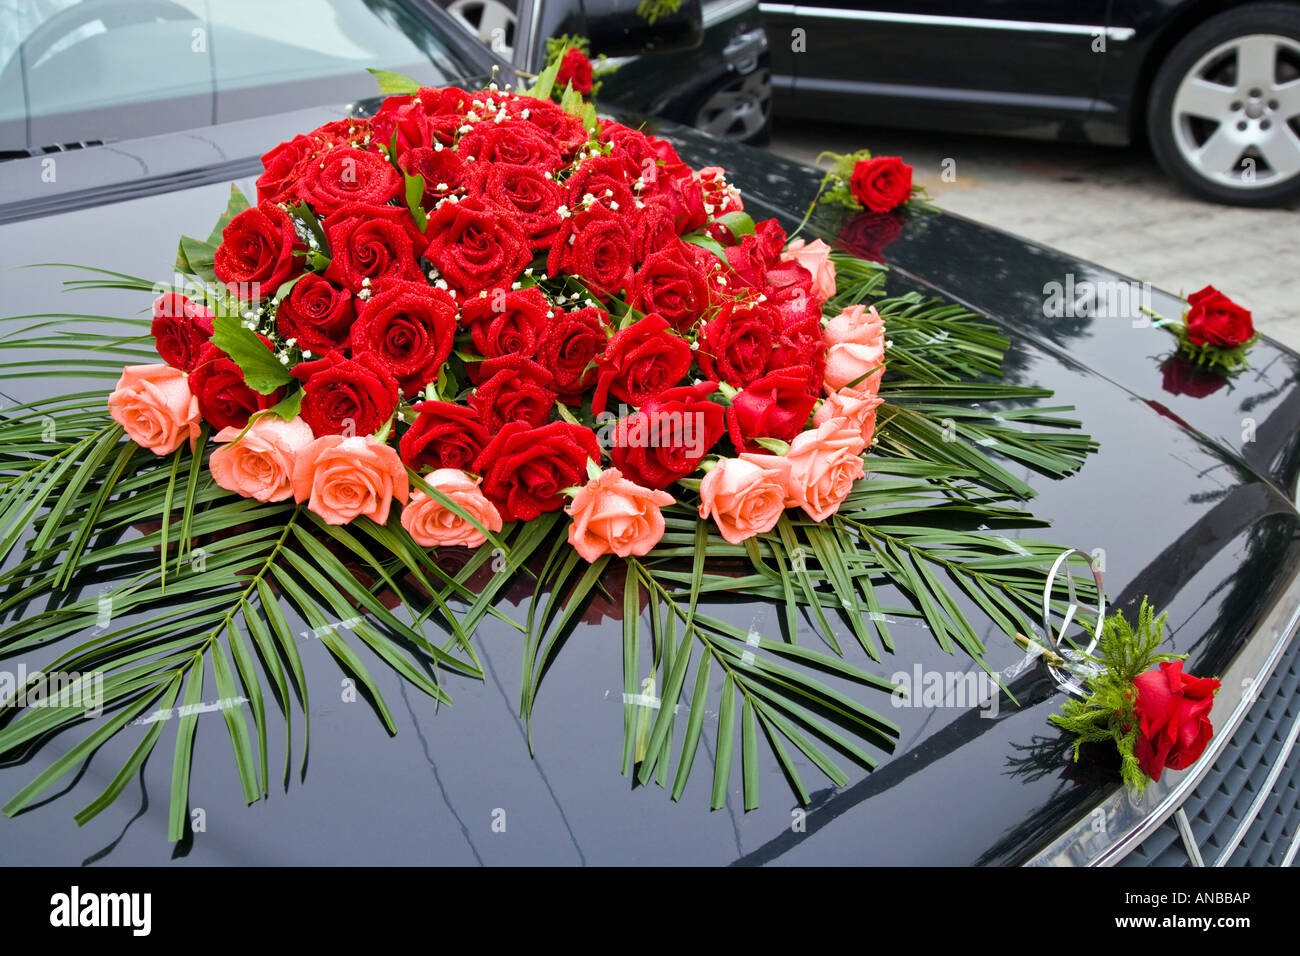 Bouquet Of Flowers On Bonnet Of Wedding Car Beijing China Jmh2926 Stock Photo Alamy